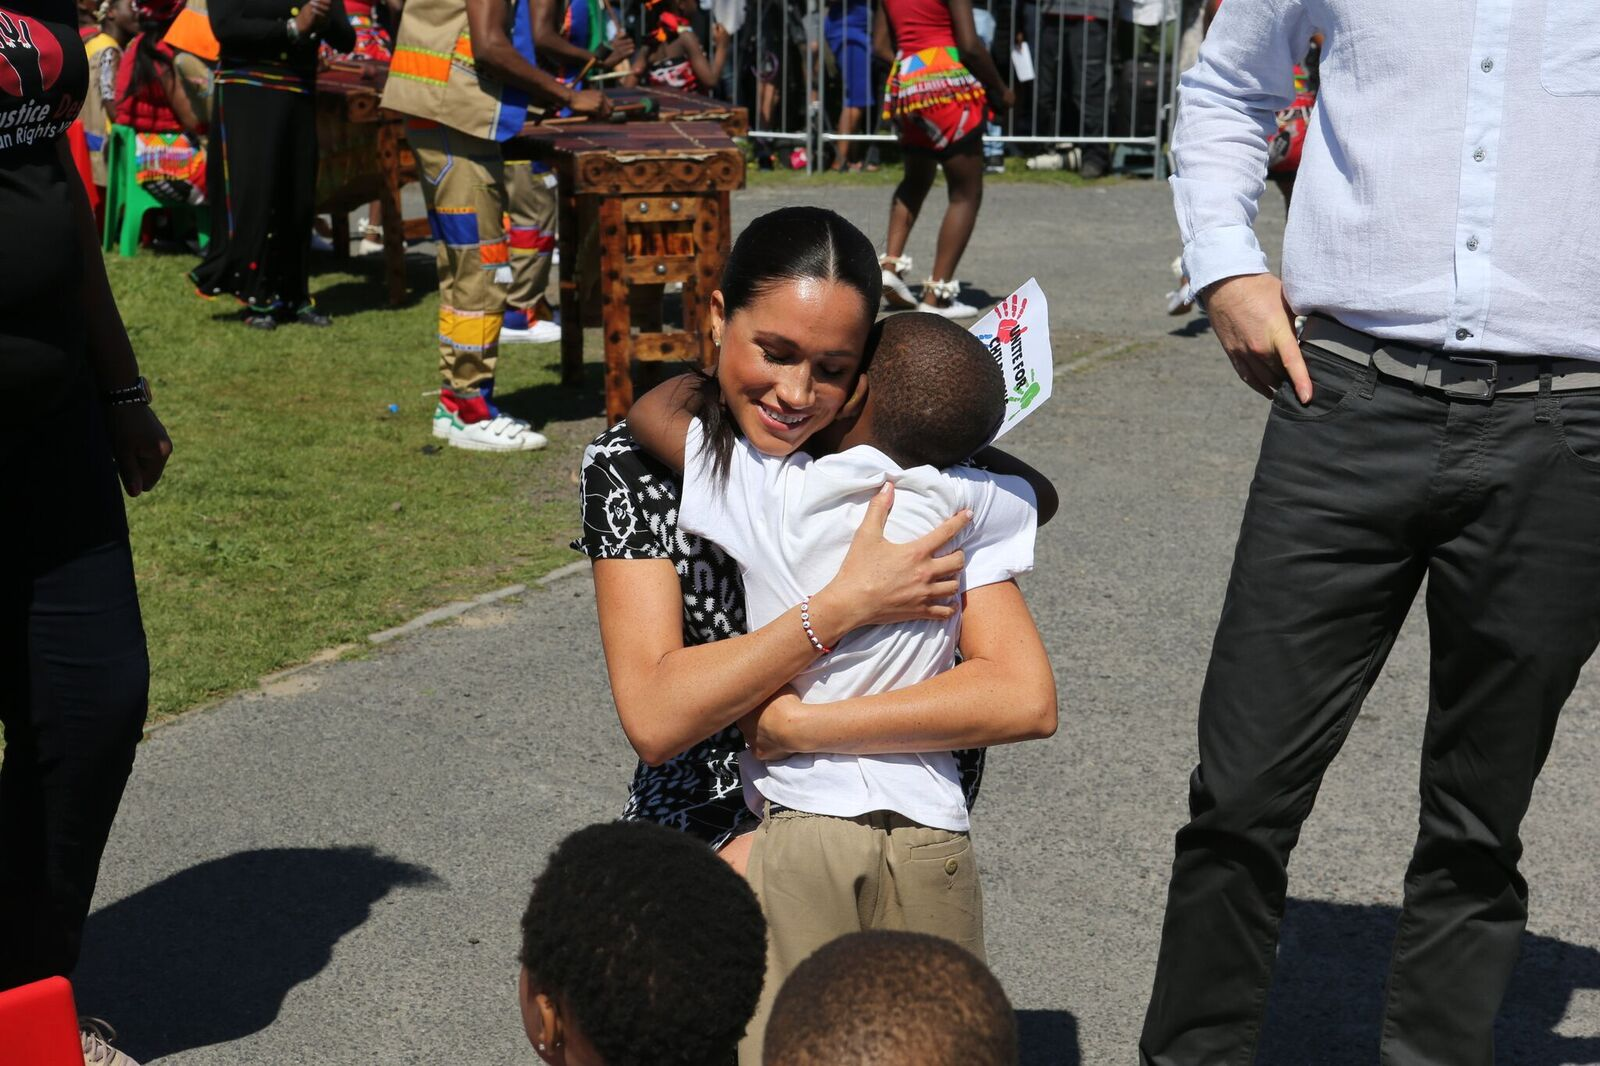 Meghan Markle hugging a child that welcomed her to South Africa | Source: Getty Images/GlobalImagesUkraine